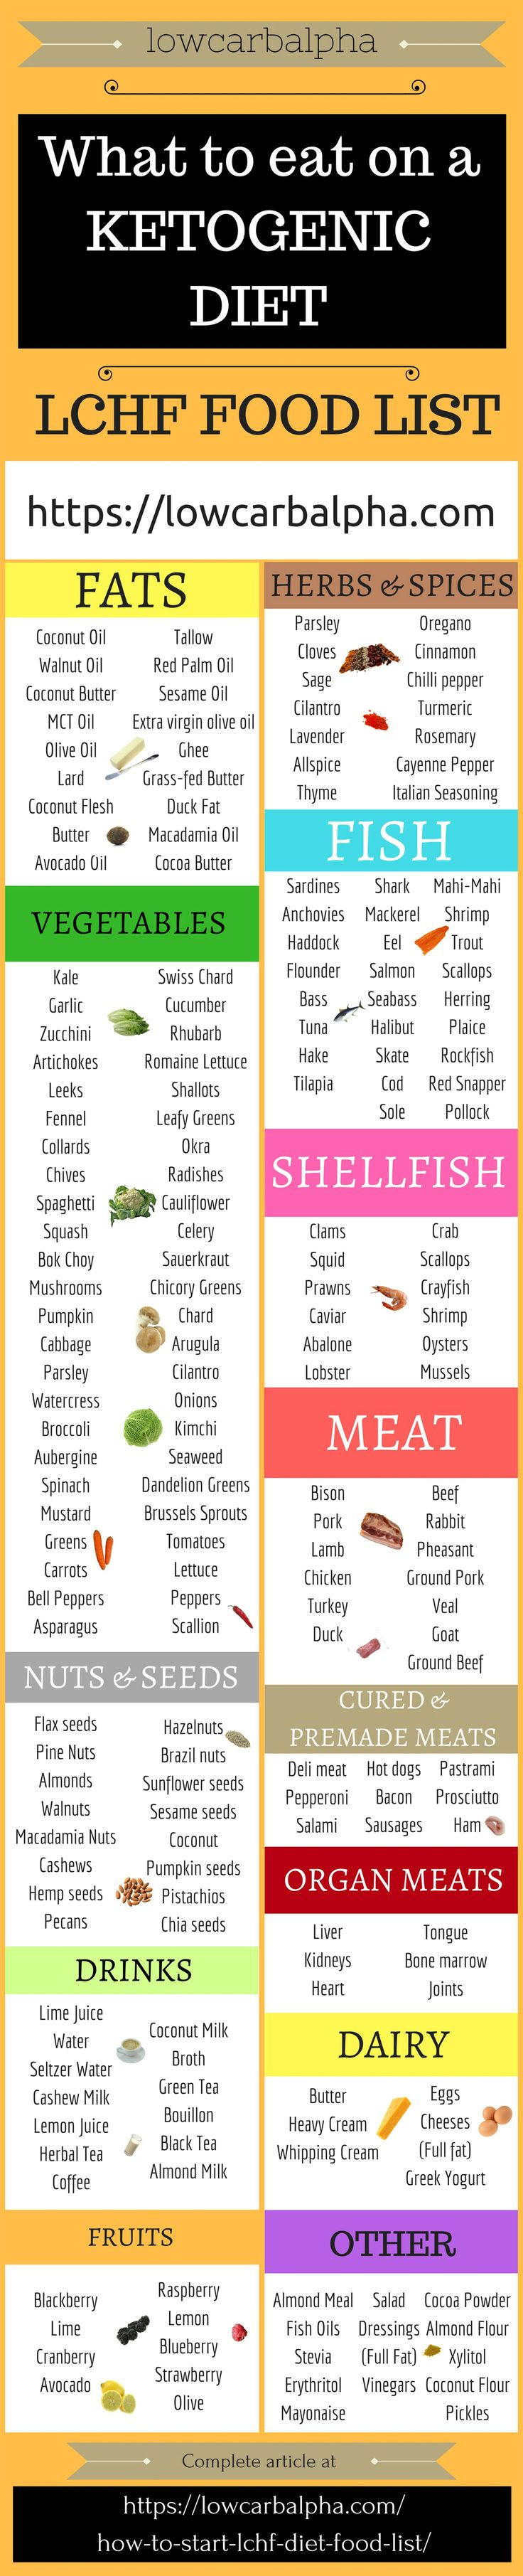 Check out our comprehensive LCHF Diet Food List. https://lowcarbalpha.com/how-to-start-lchf-diet-food-list/ Foods for a low-carb high-fat diet to add to your grocery list and foods to avoid on keto to achieve ketosis. Burn ketones for energy! #lowcarbalpha #weightloss #loseweight #nutrition